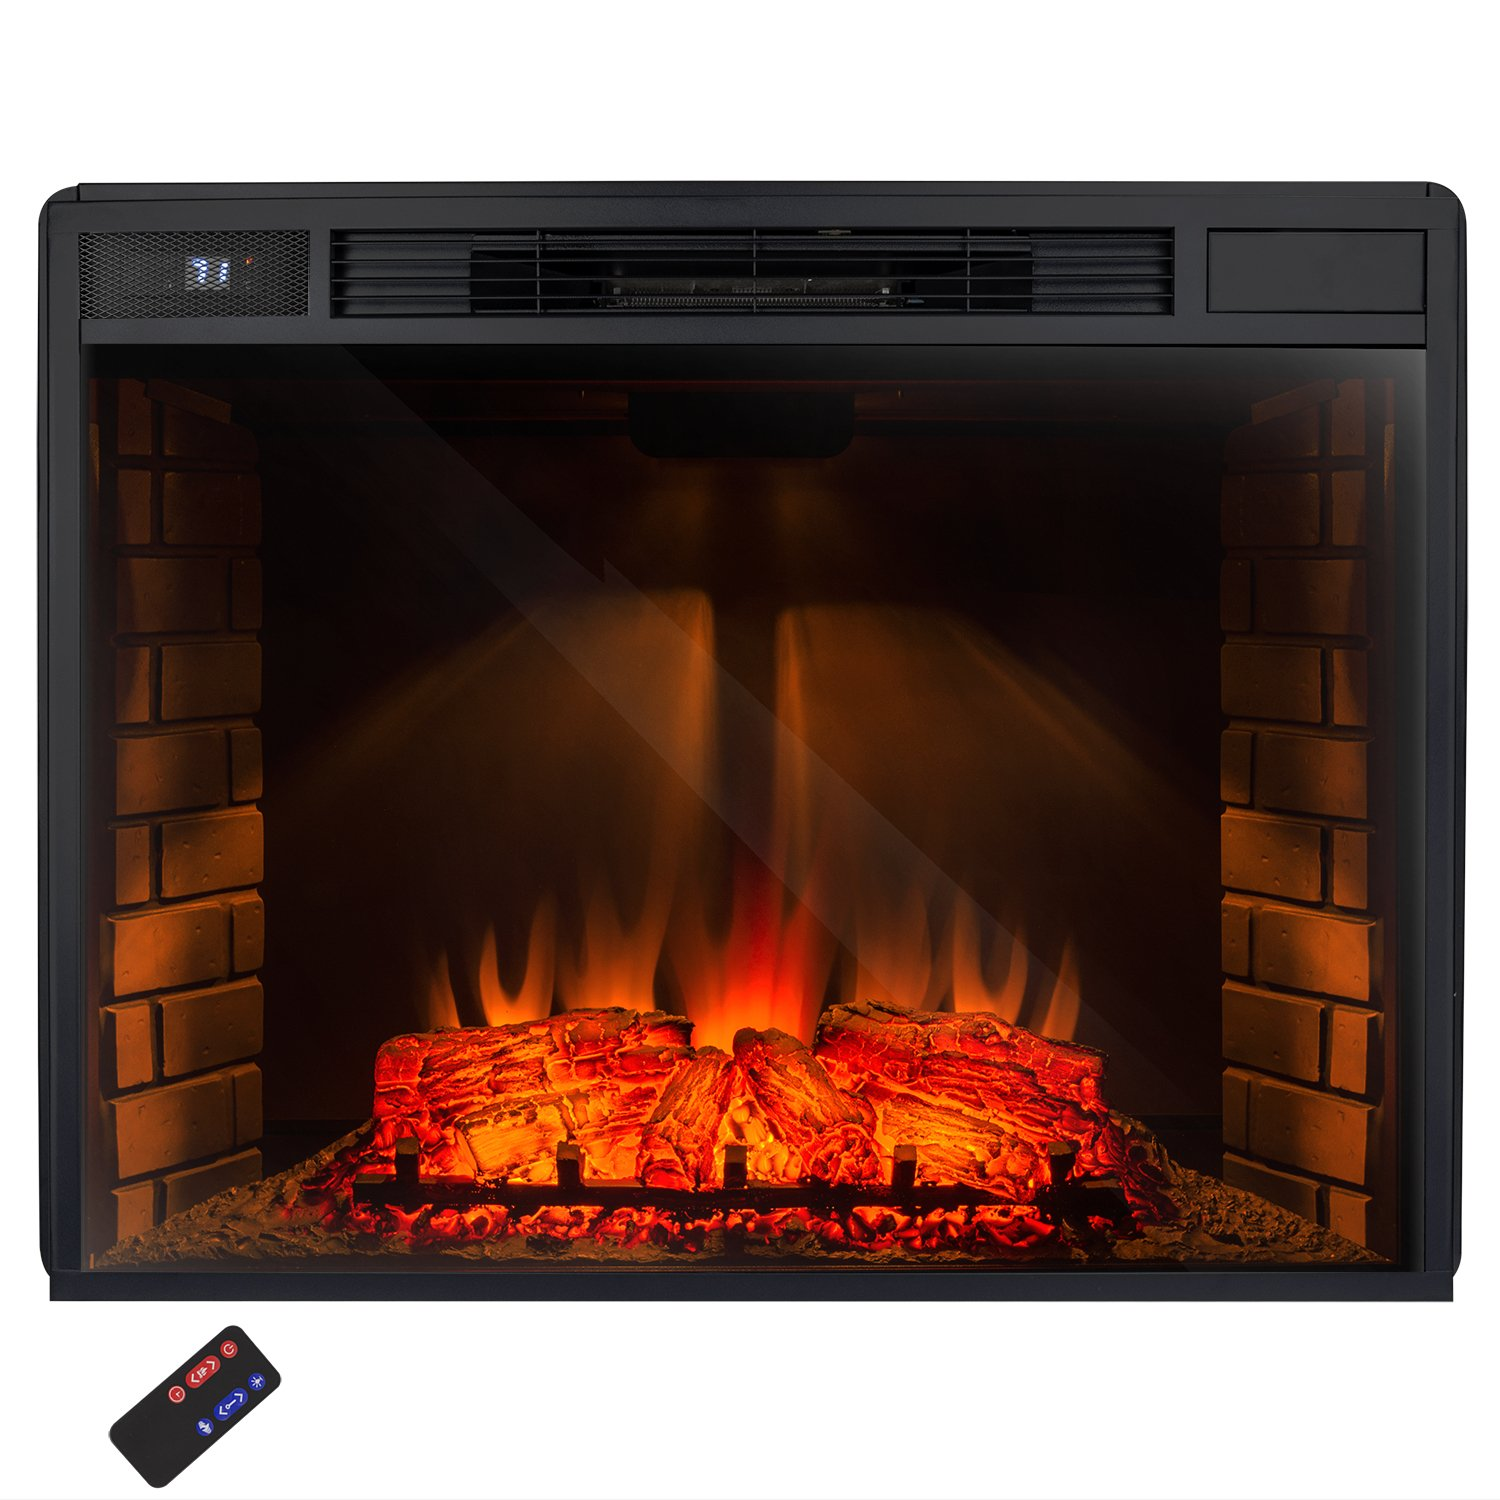 flame infrared built img console insert fireplace entertainment white in fireplaces electric center media valmont inch real